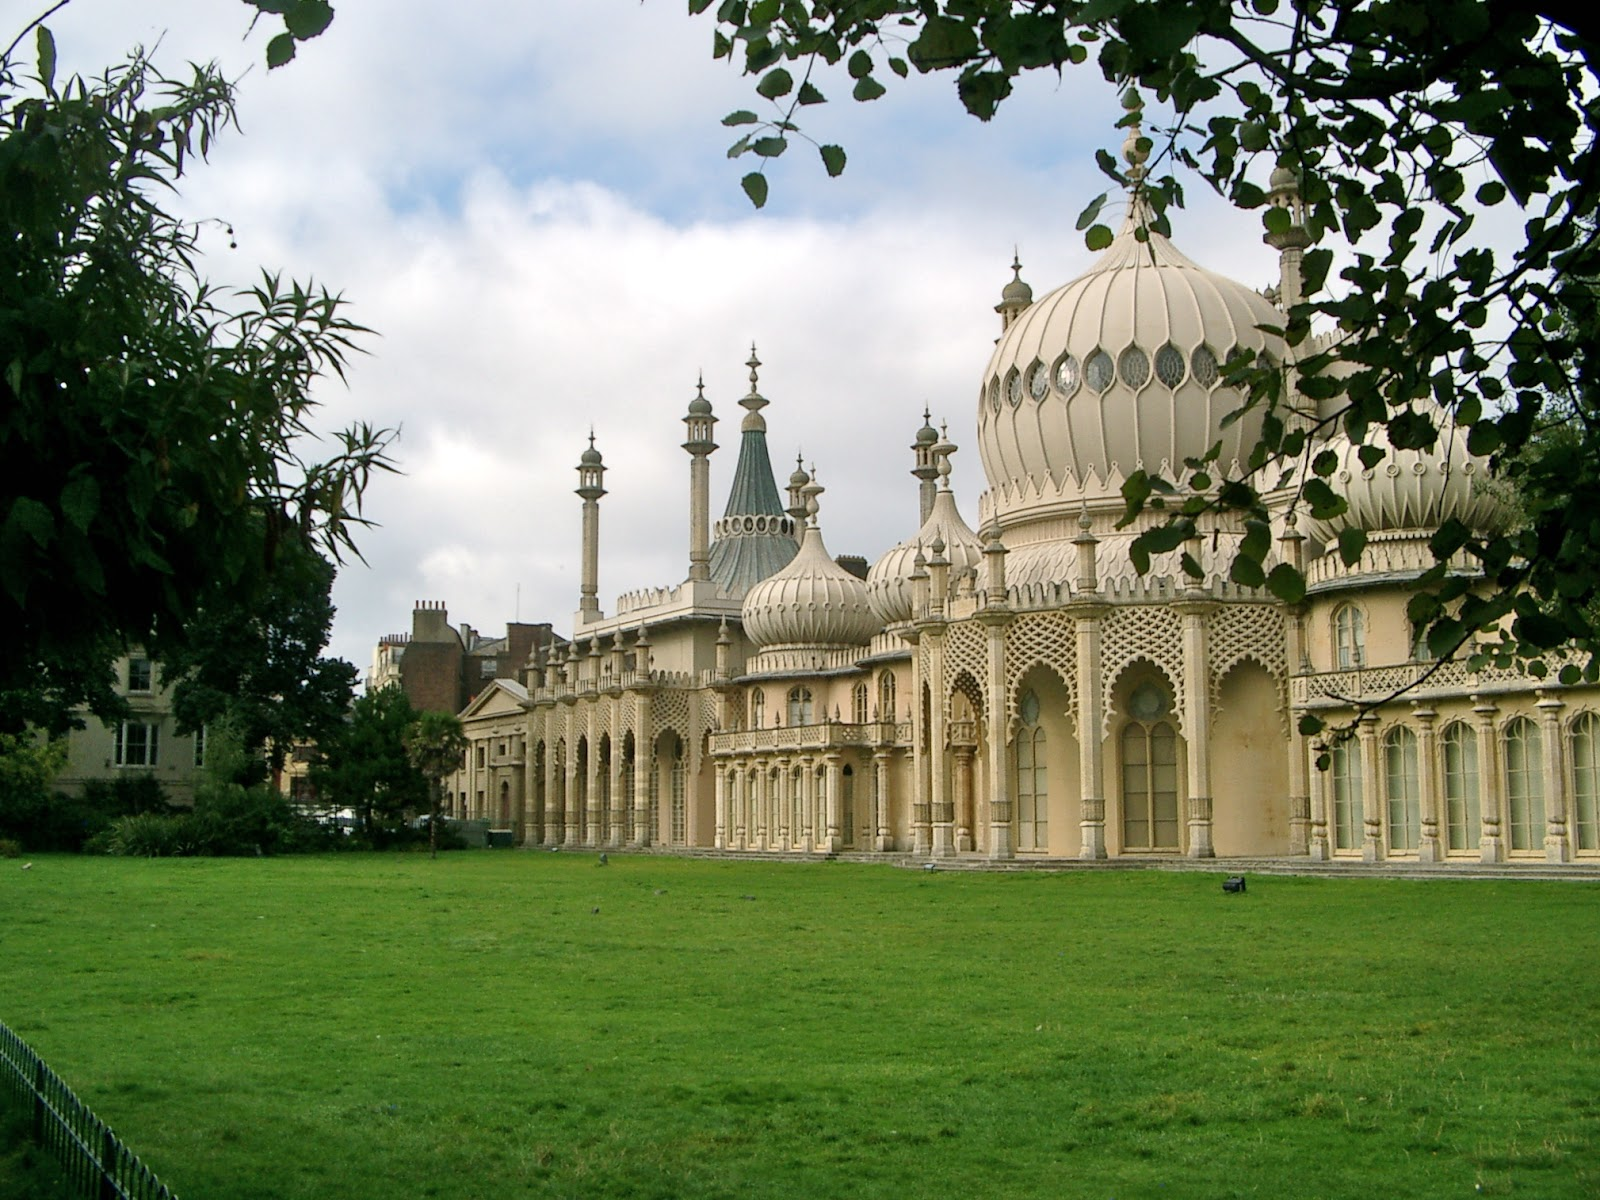 Royal pavilion volunteers